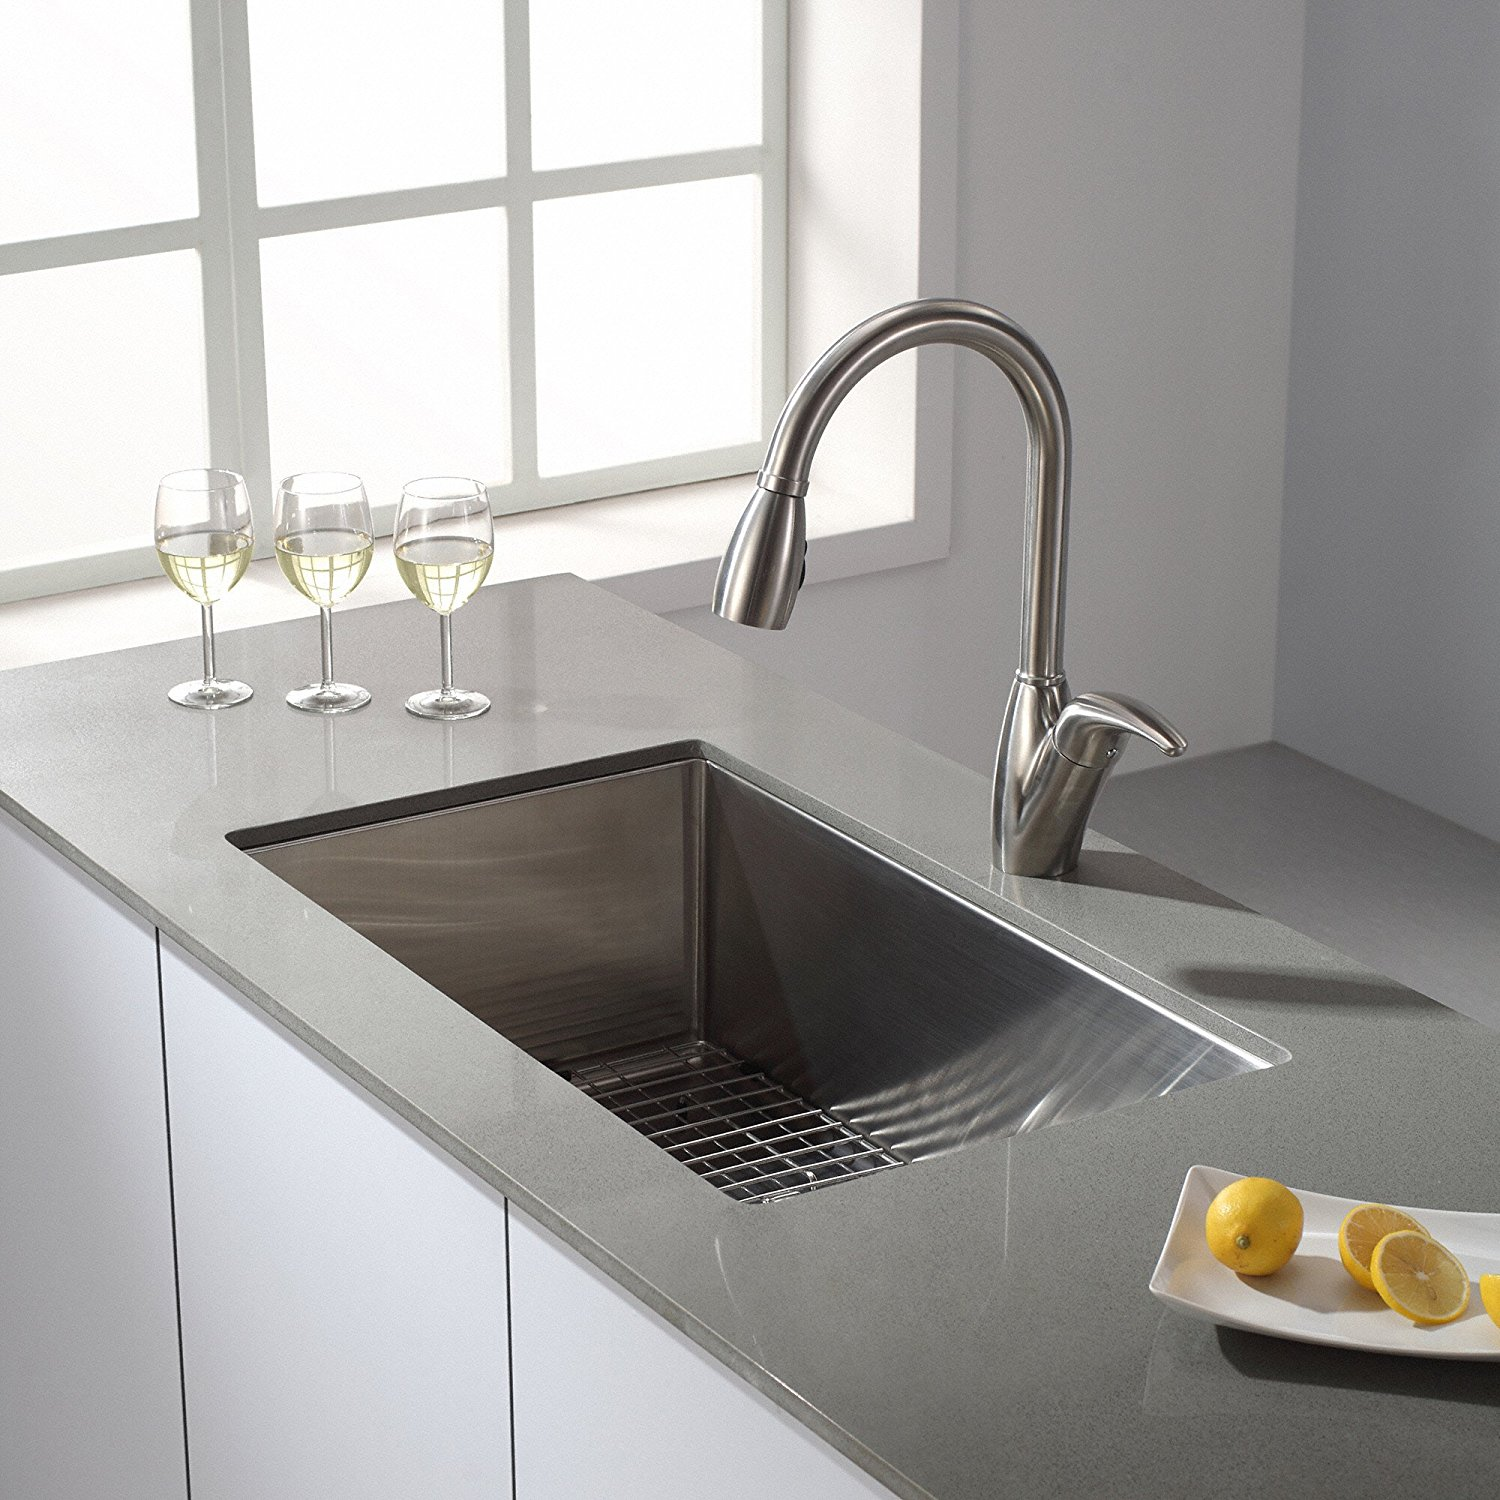 Kraus Khu 100 30 Kitchen Sink